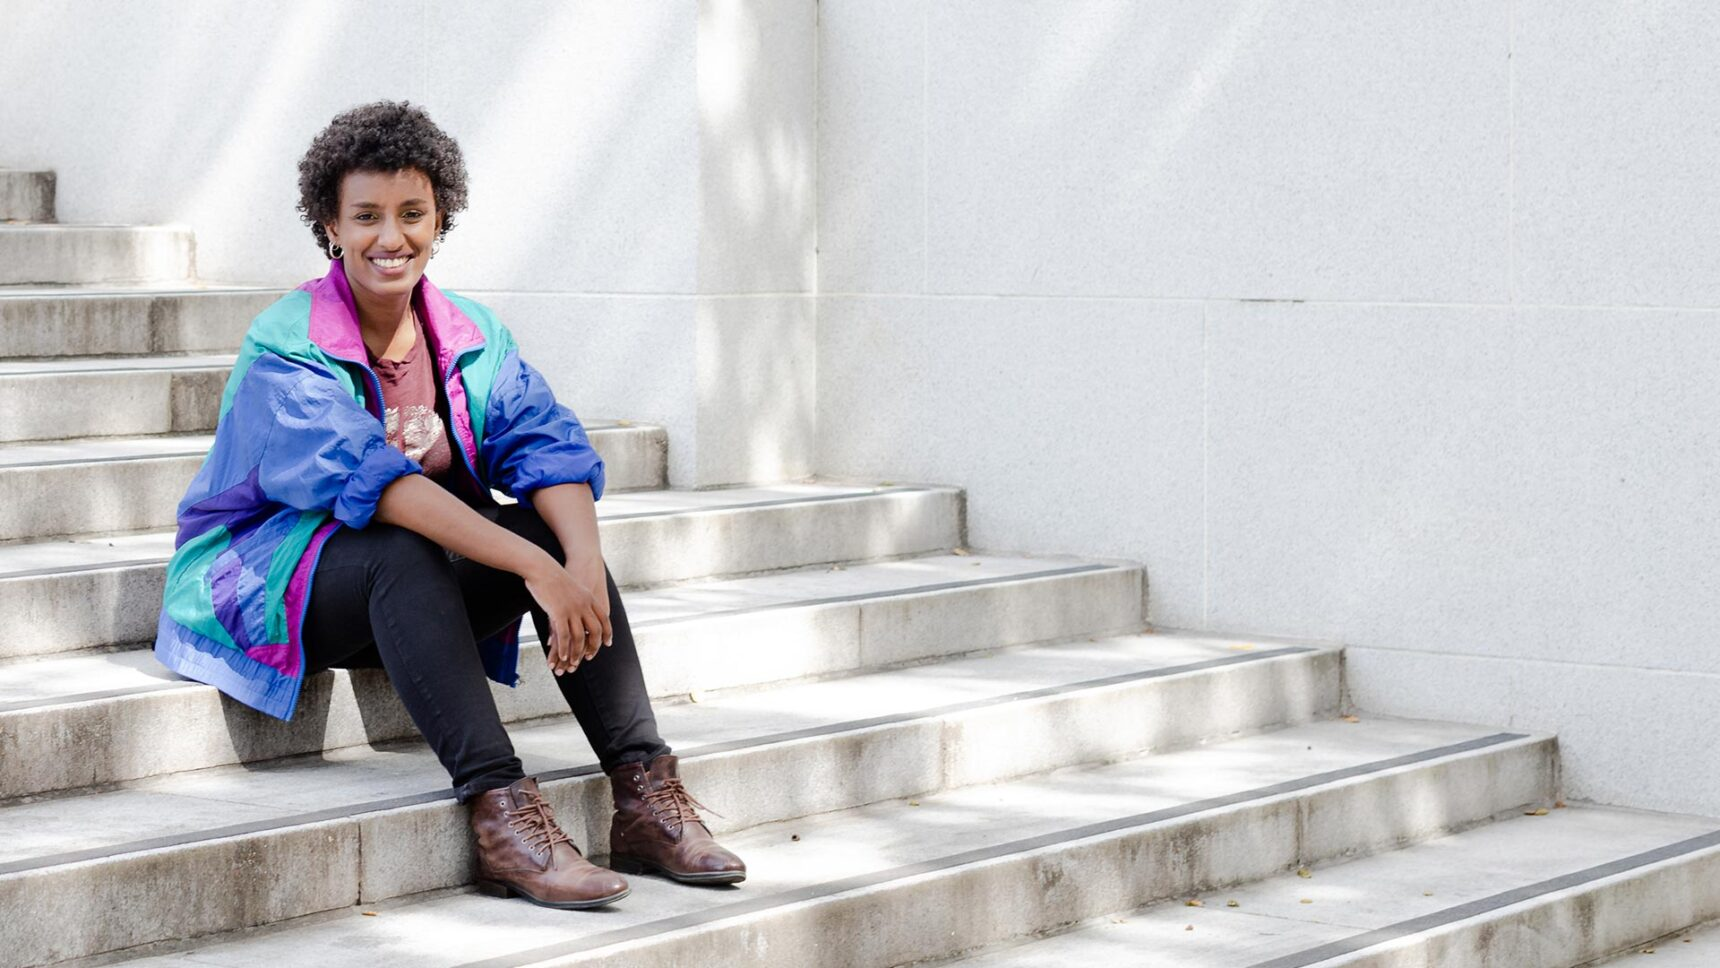 Abebe switched fields from math to computer science in order to learn tools she could apply to social problems like poverty and educational inequality.